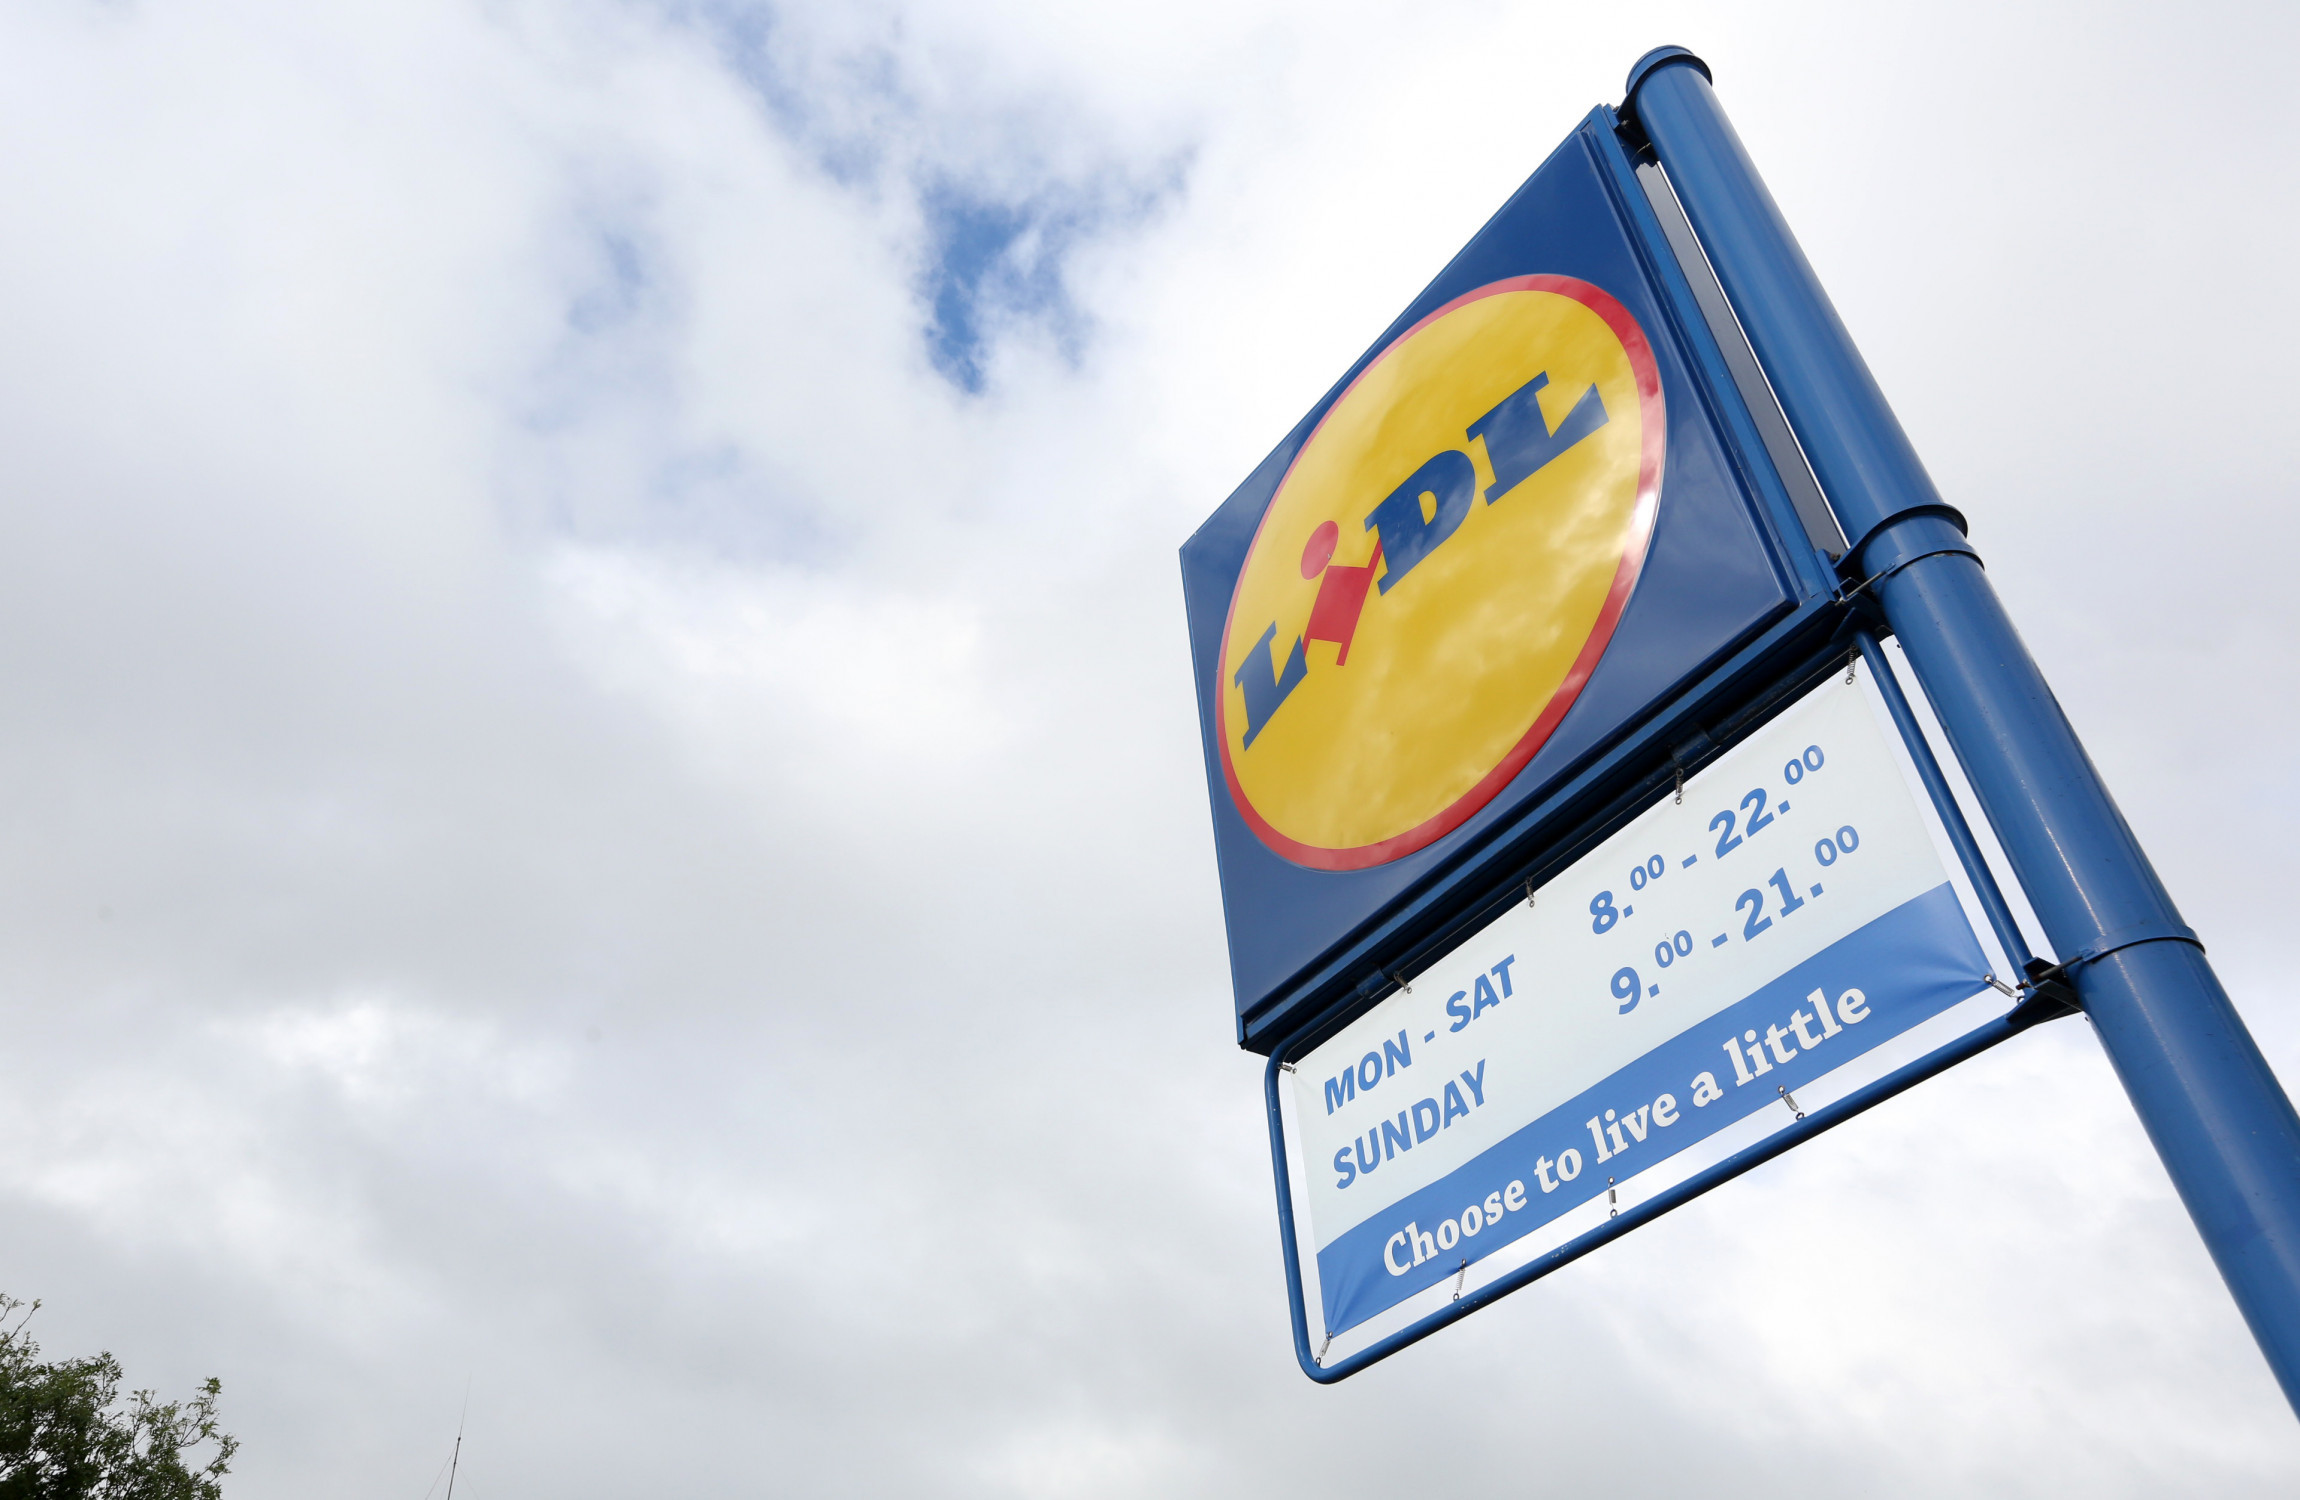 Lidl have made a statement regarding staff at their Tallaght store